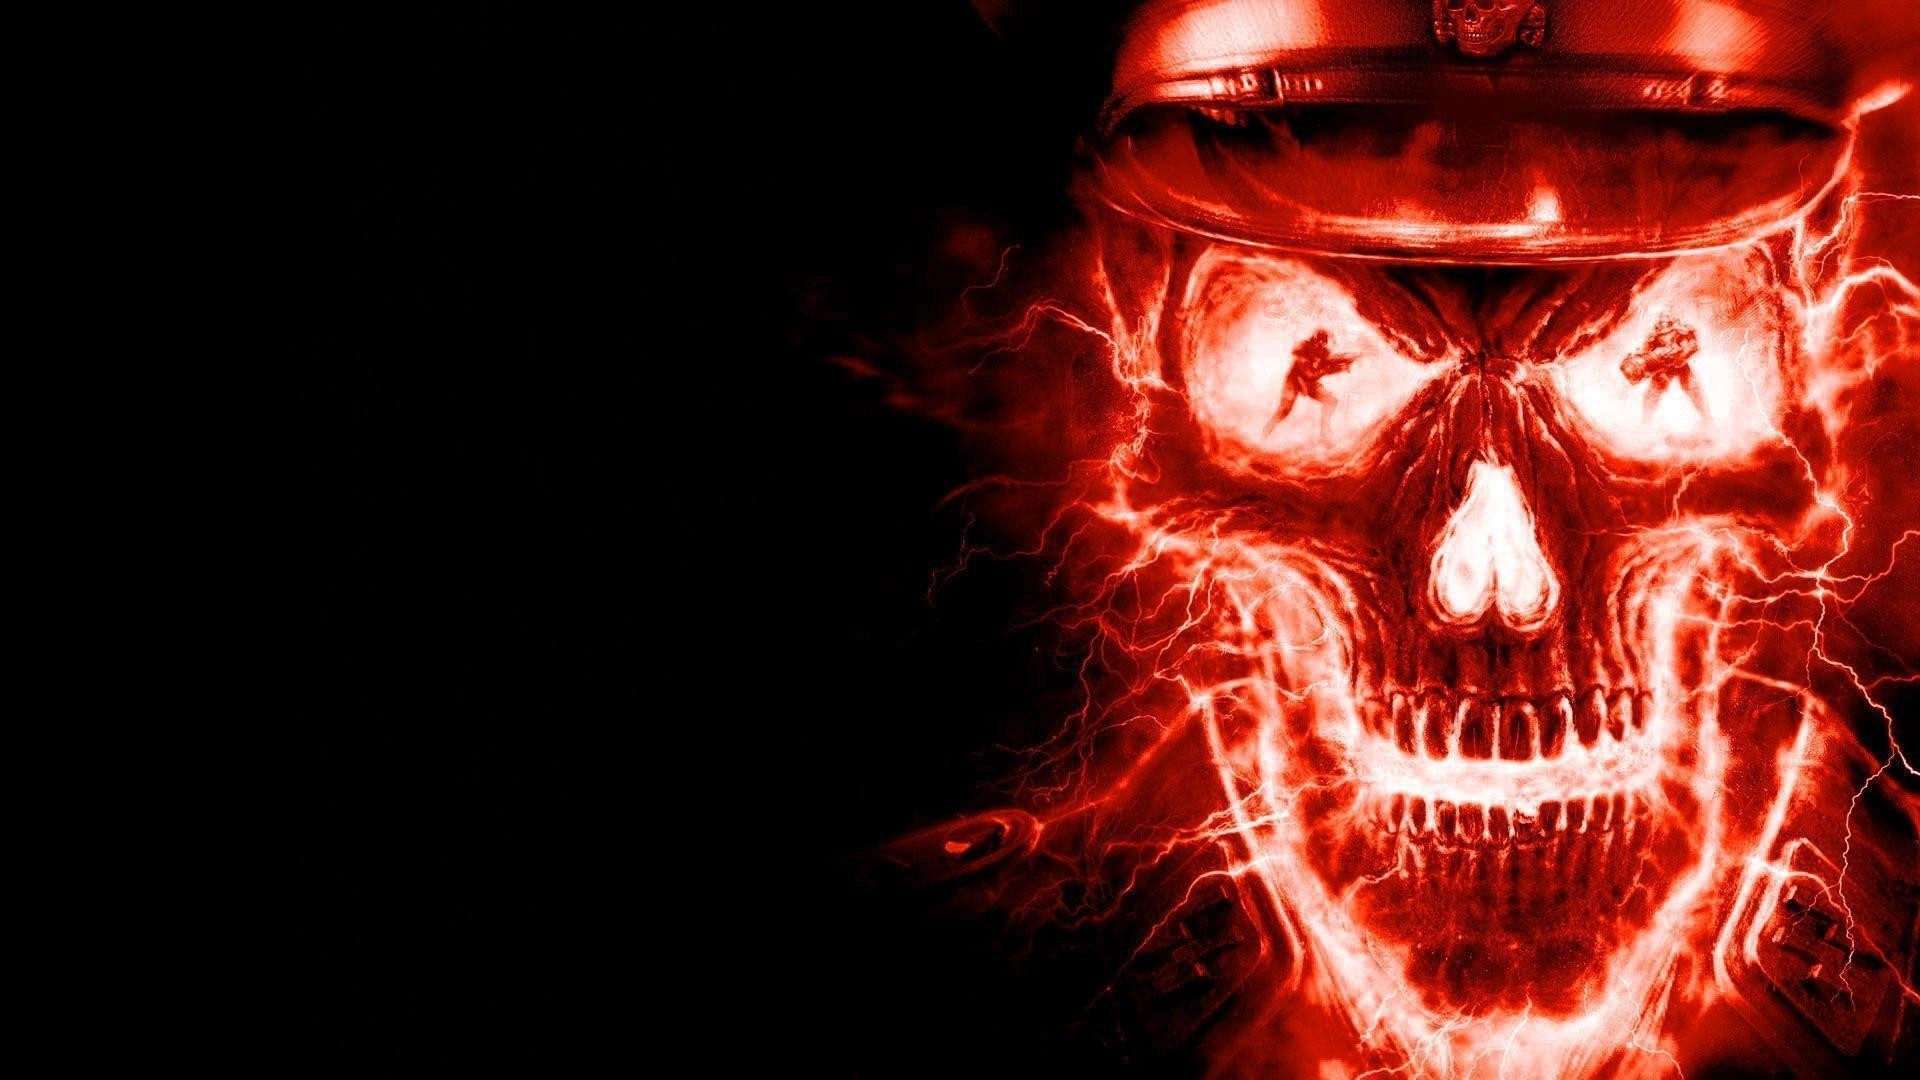 1920x1080 Cool Flaming Skull Wallpapers Images & Pictures - Becuo